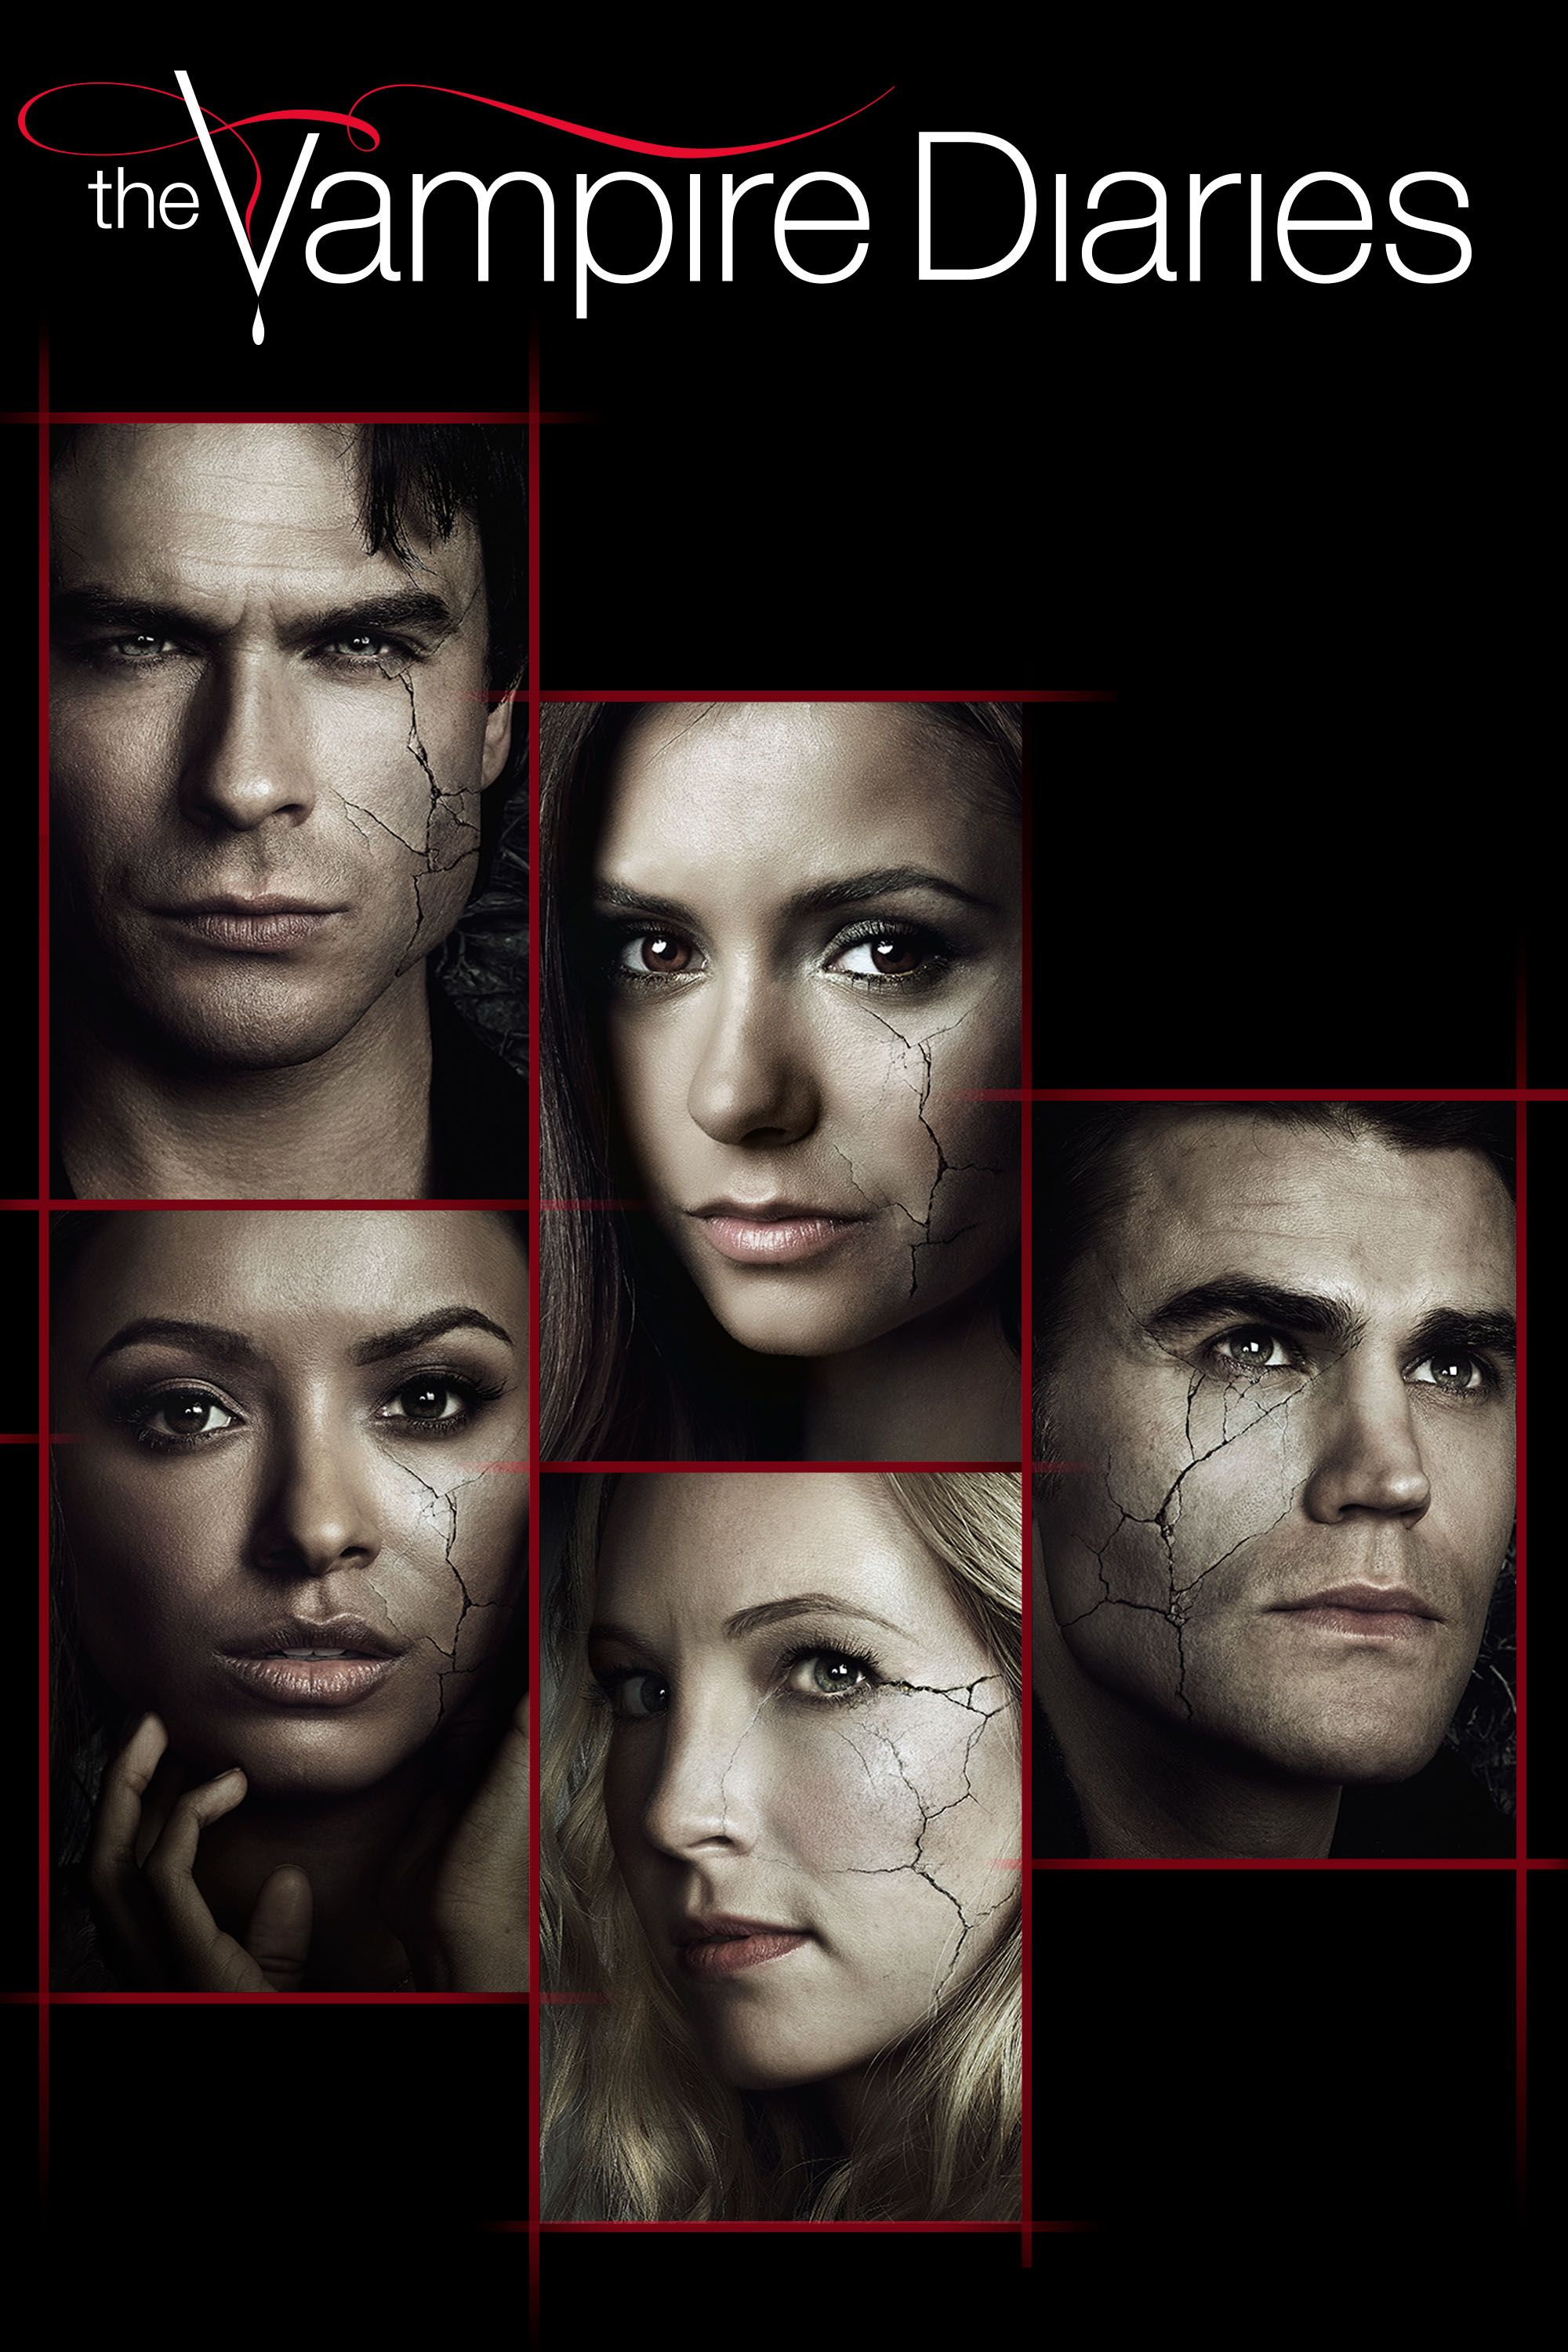 The Vampire Diaries Season 1 8 2017 Tvd Tvdforever With